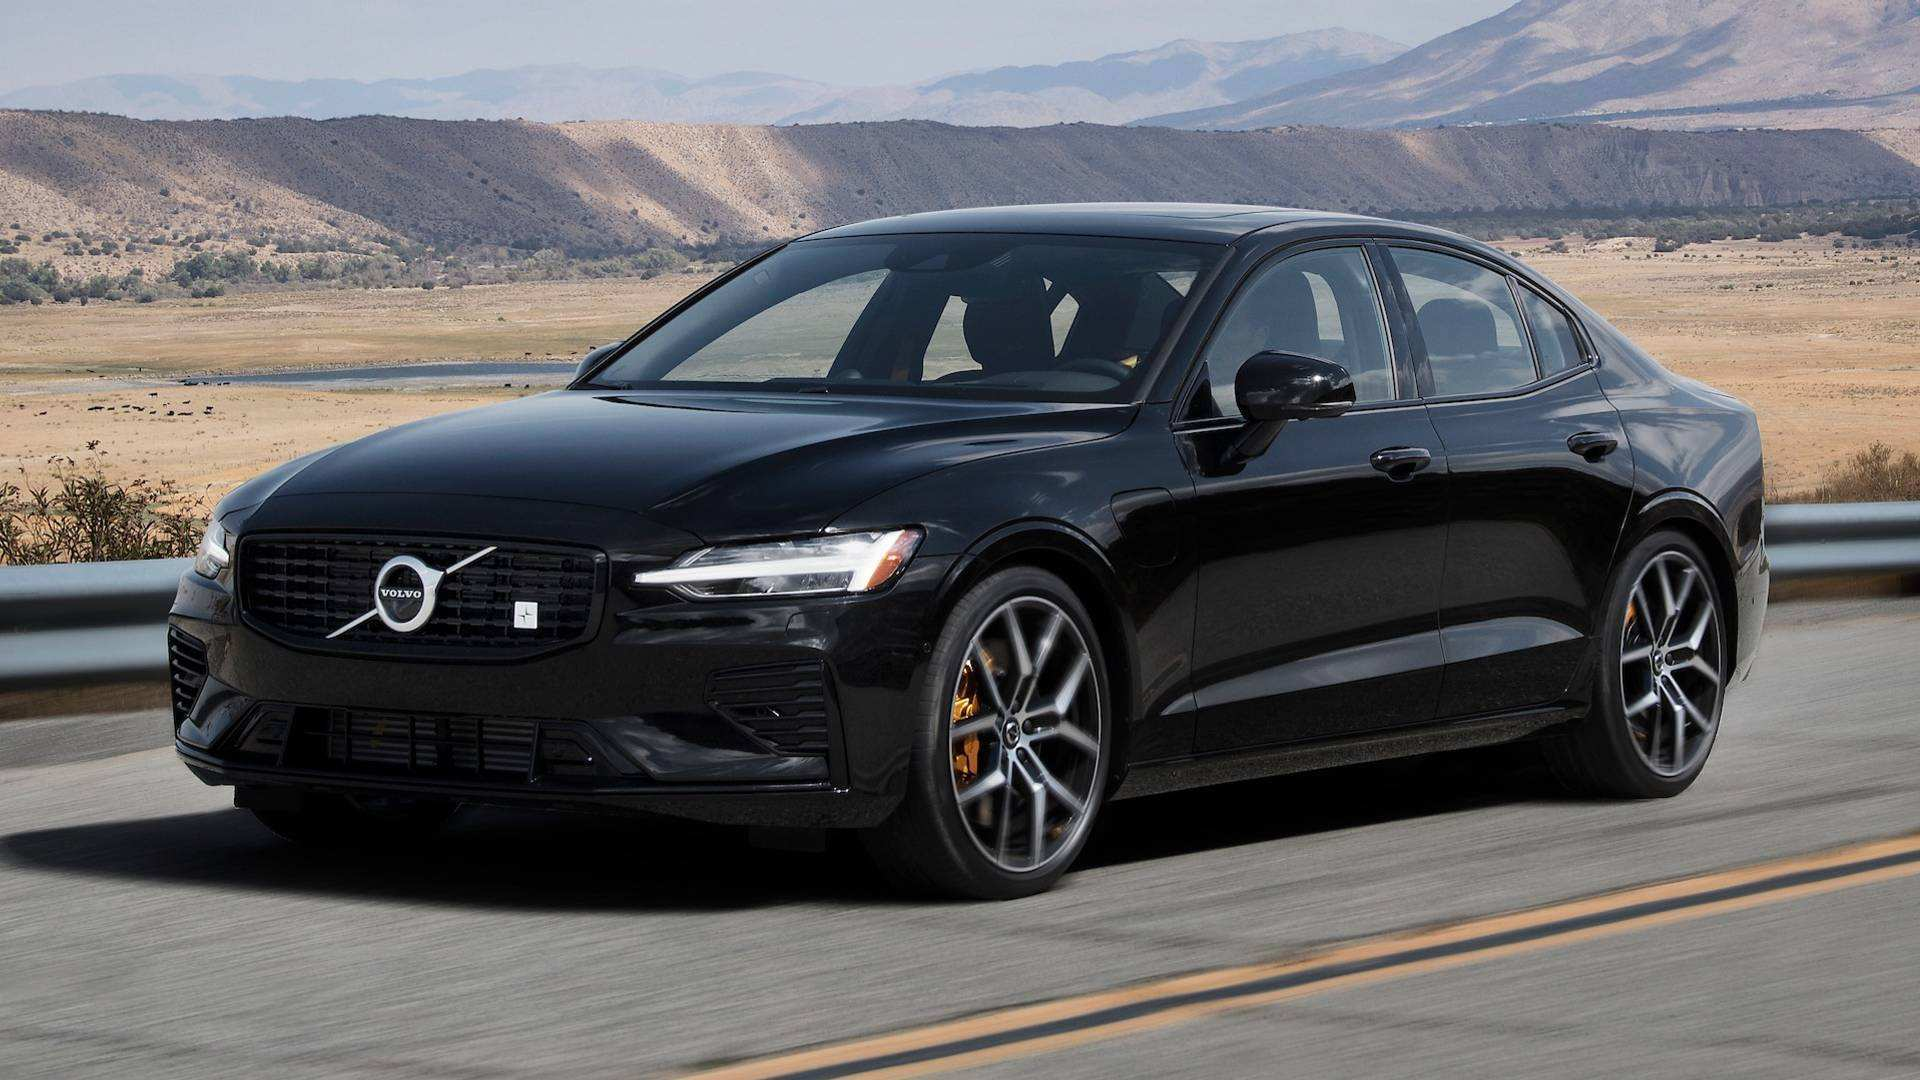 21 Best Review Volvo S60 Polestar 2019 Performance and New Engine with Volvo S60 Polestar 2019